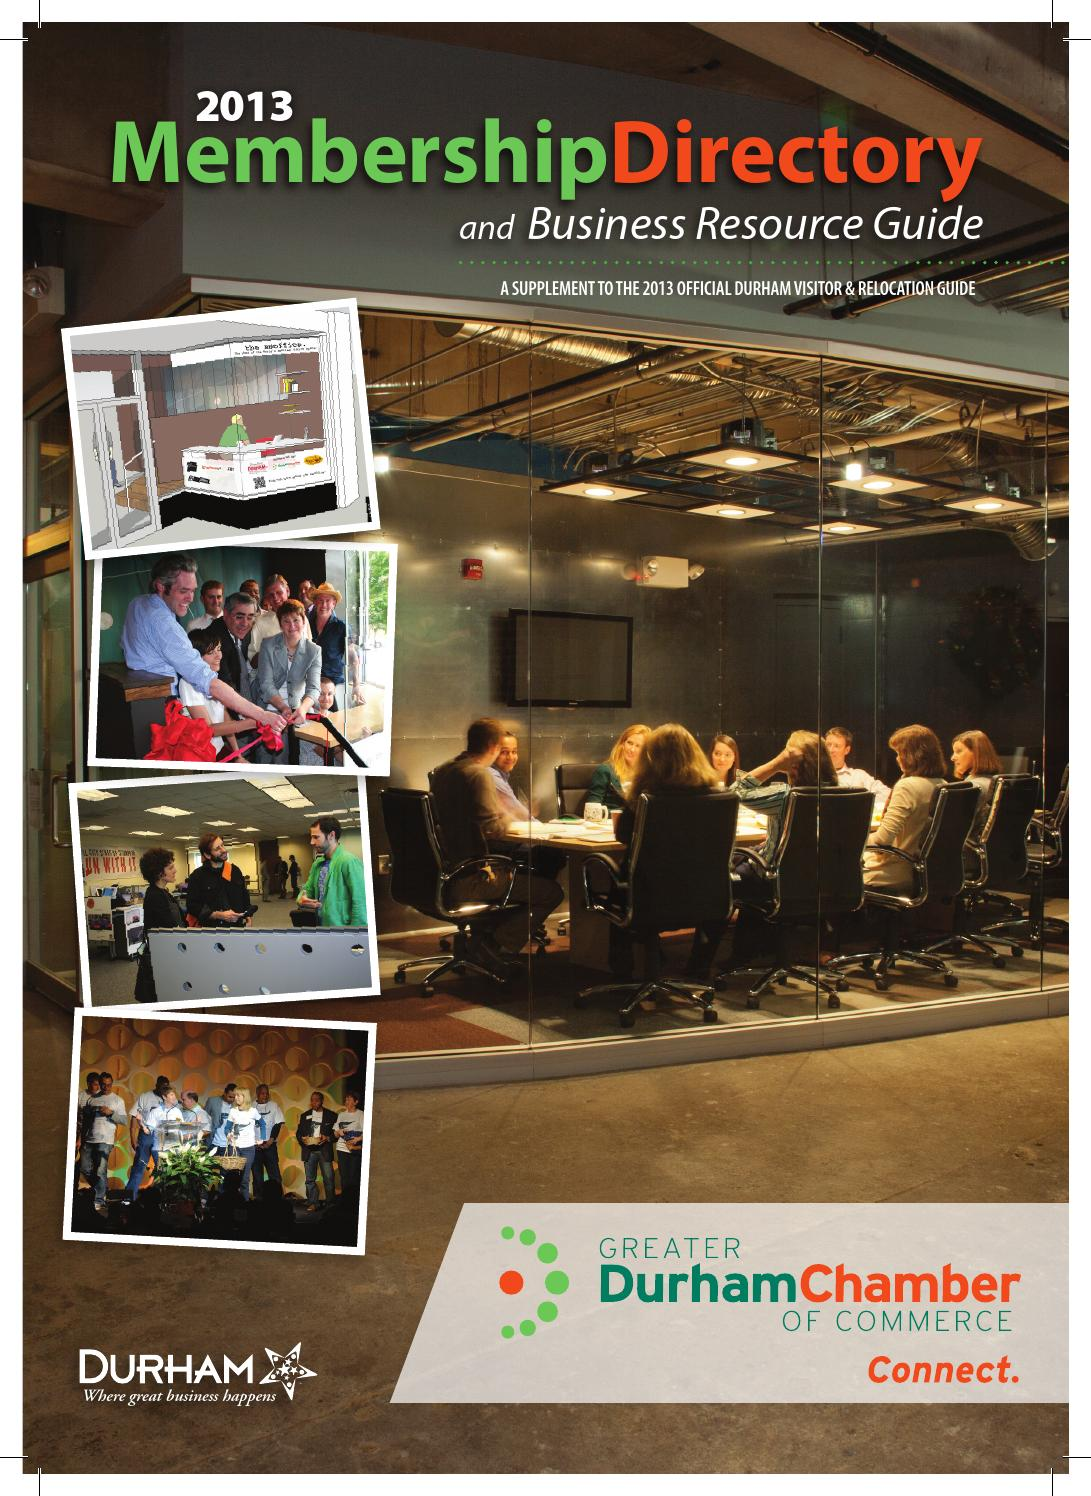 2013 2014 martinsburg berkeley county chamber of commerce chamberdirectory2013 finalcr